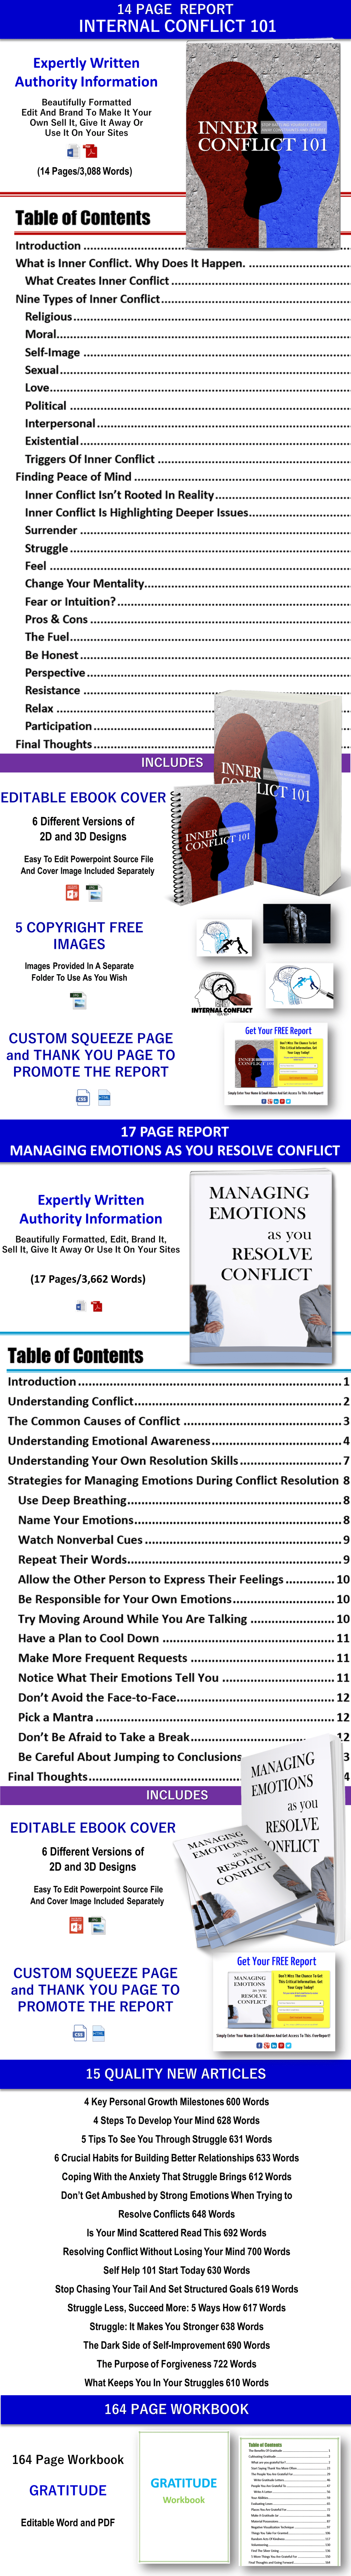 Resolve Conflict Reports, Articles PLR